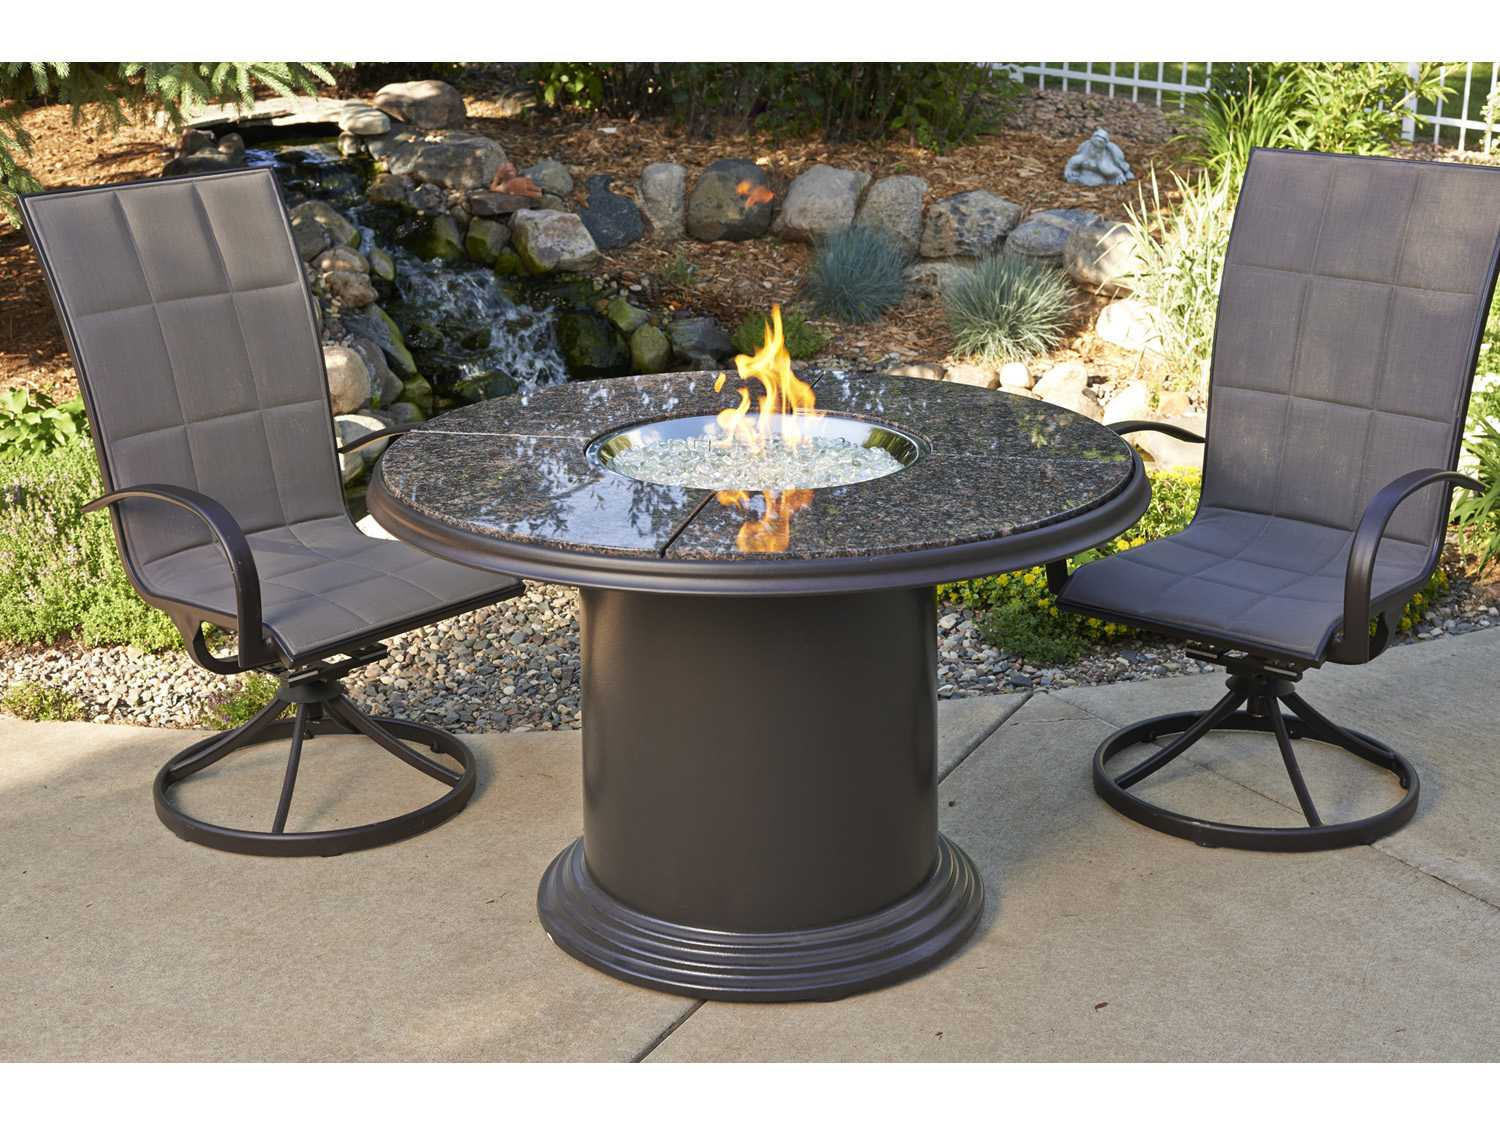 48 round crystal fire pit dining table with british granite top lazy